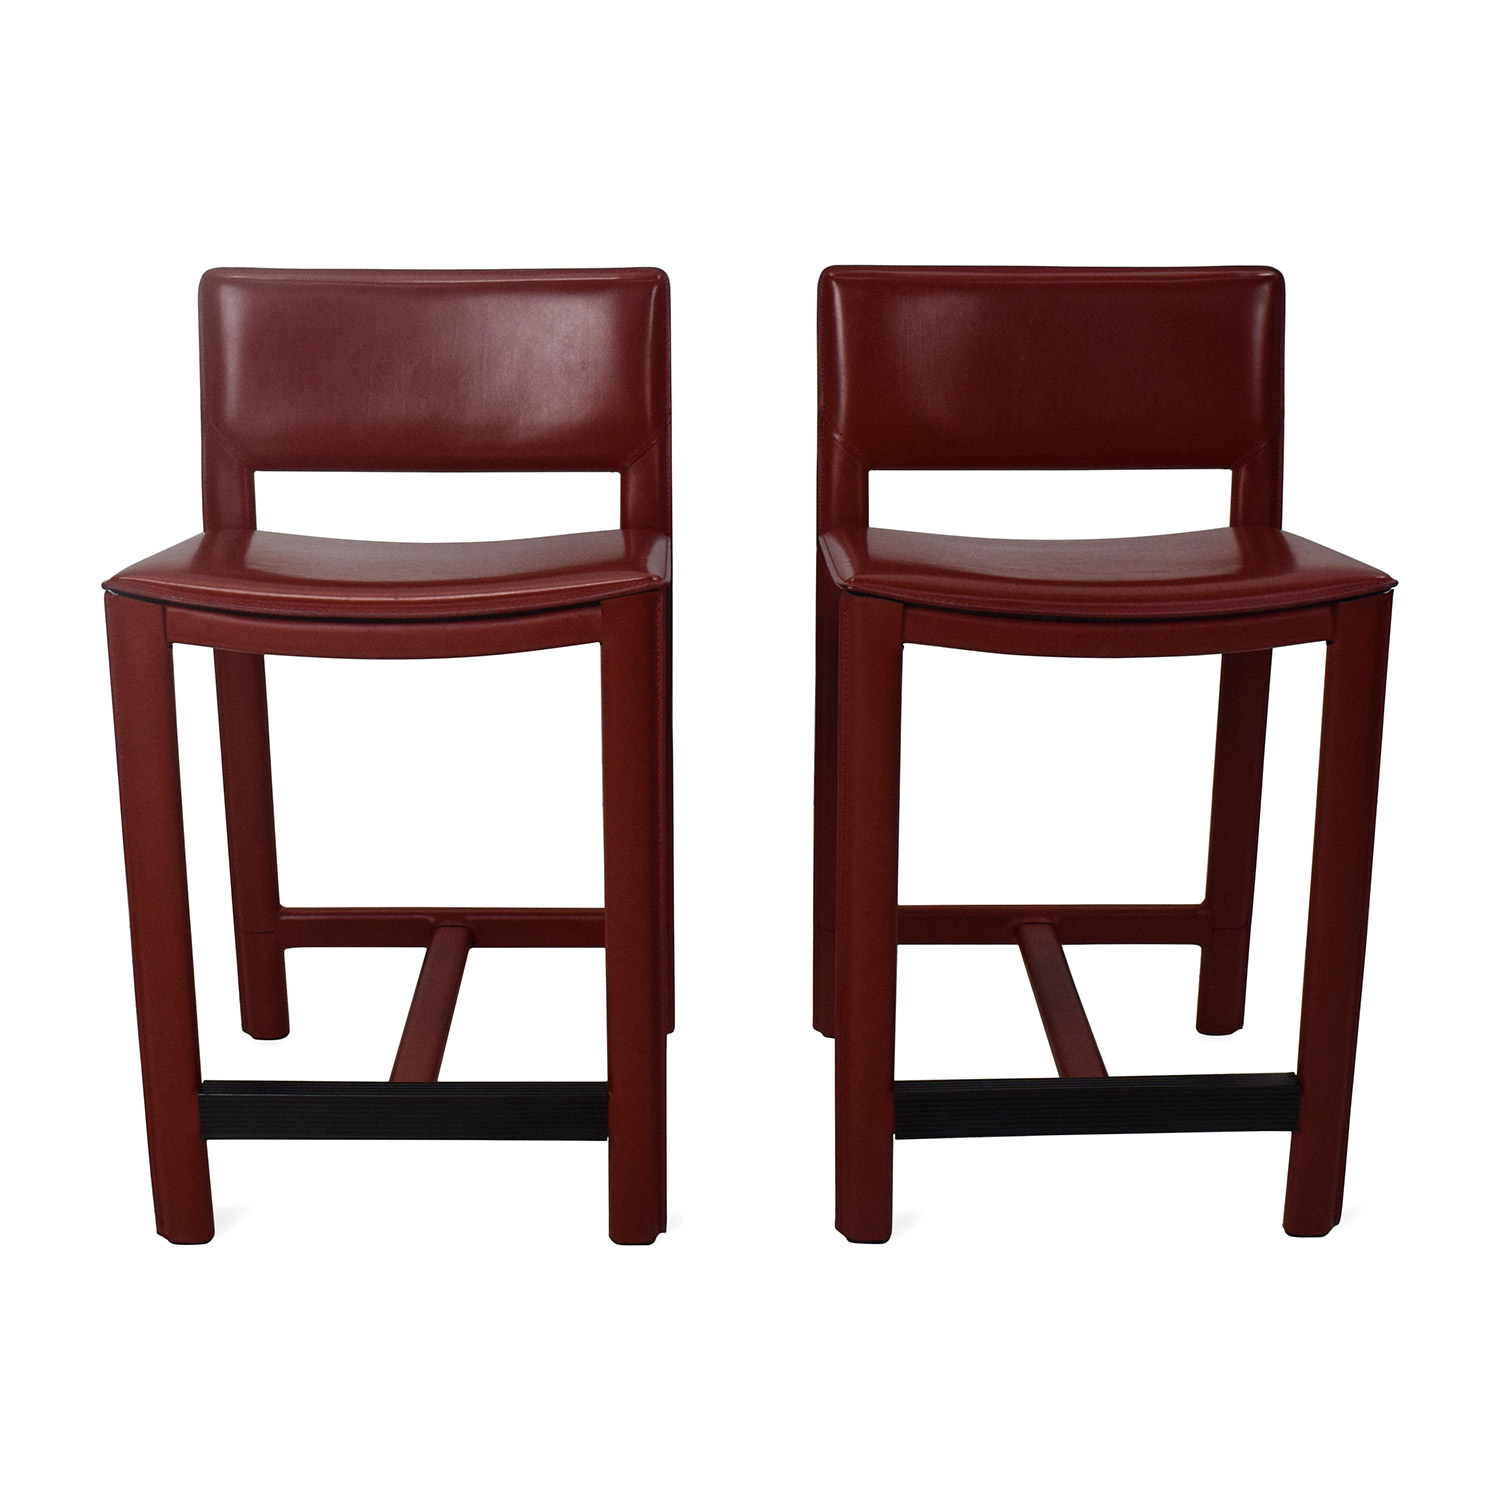 shop Room and Board Room & Board Sava Leather Bar Stool Pair online